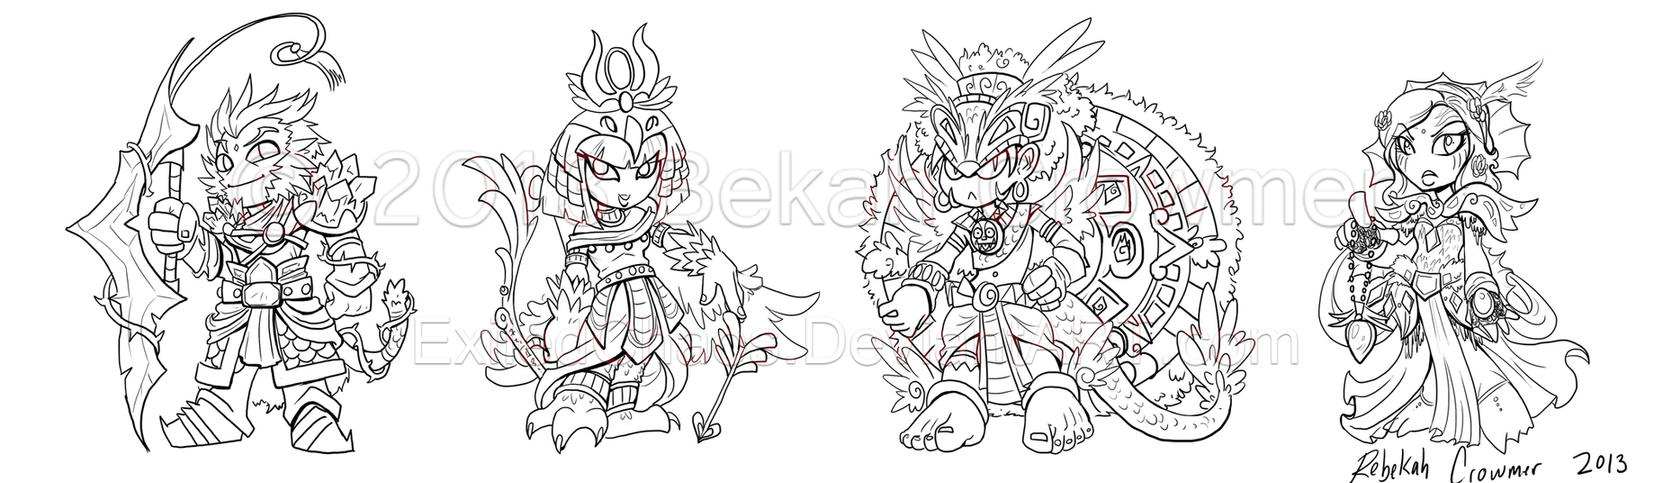 Champion chibis Lineart by ExiledChaos